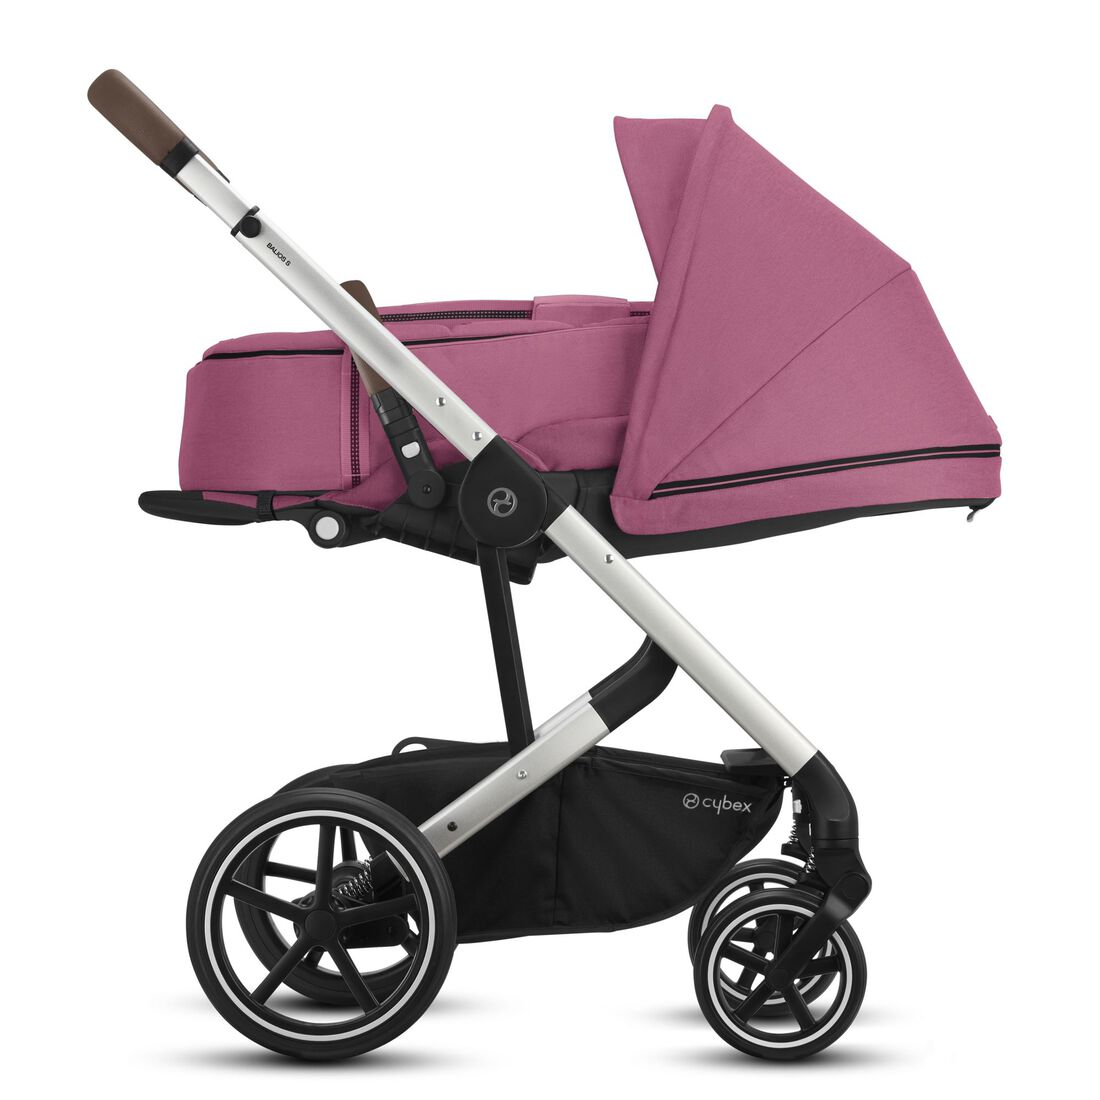 CYBEX Balios S Lux - Magnolia Pink (Silver Frame) in Magnolia Pink (Silver Frame) large image number 4